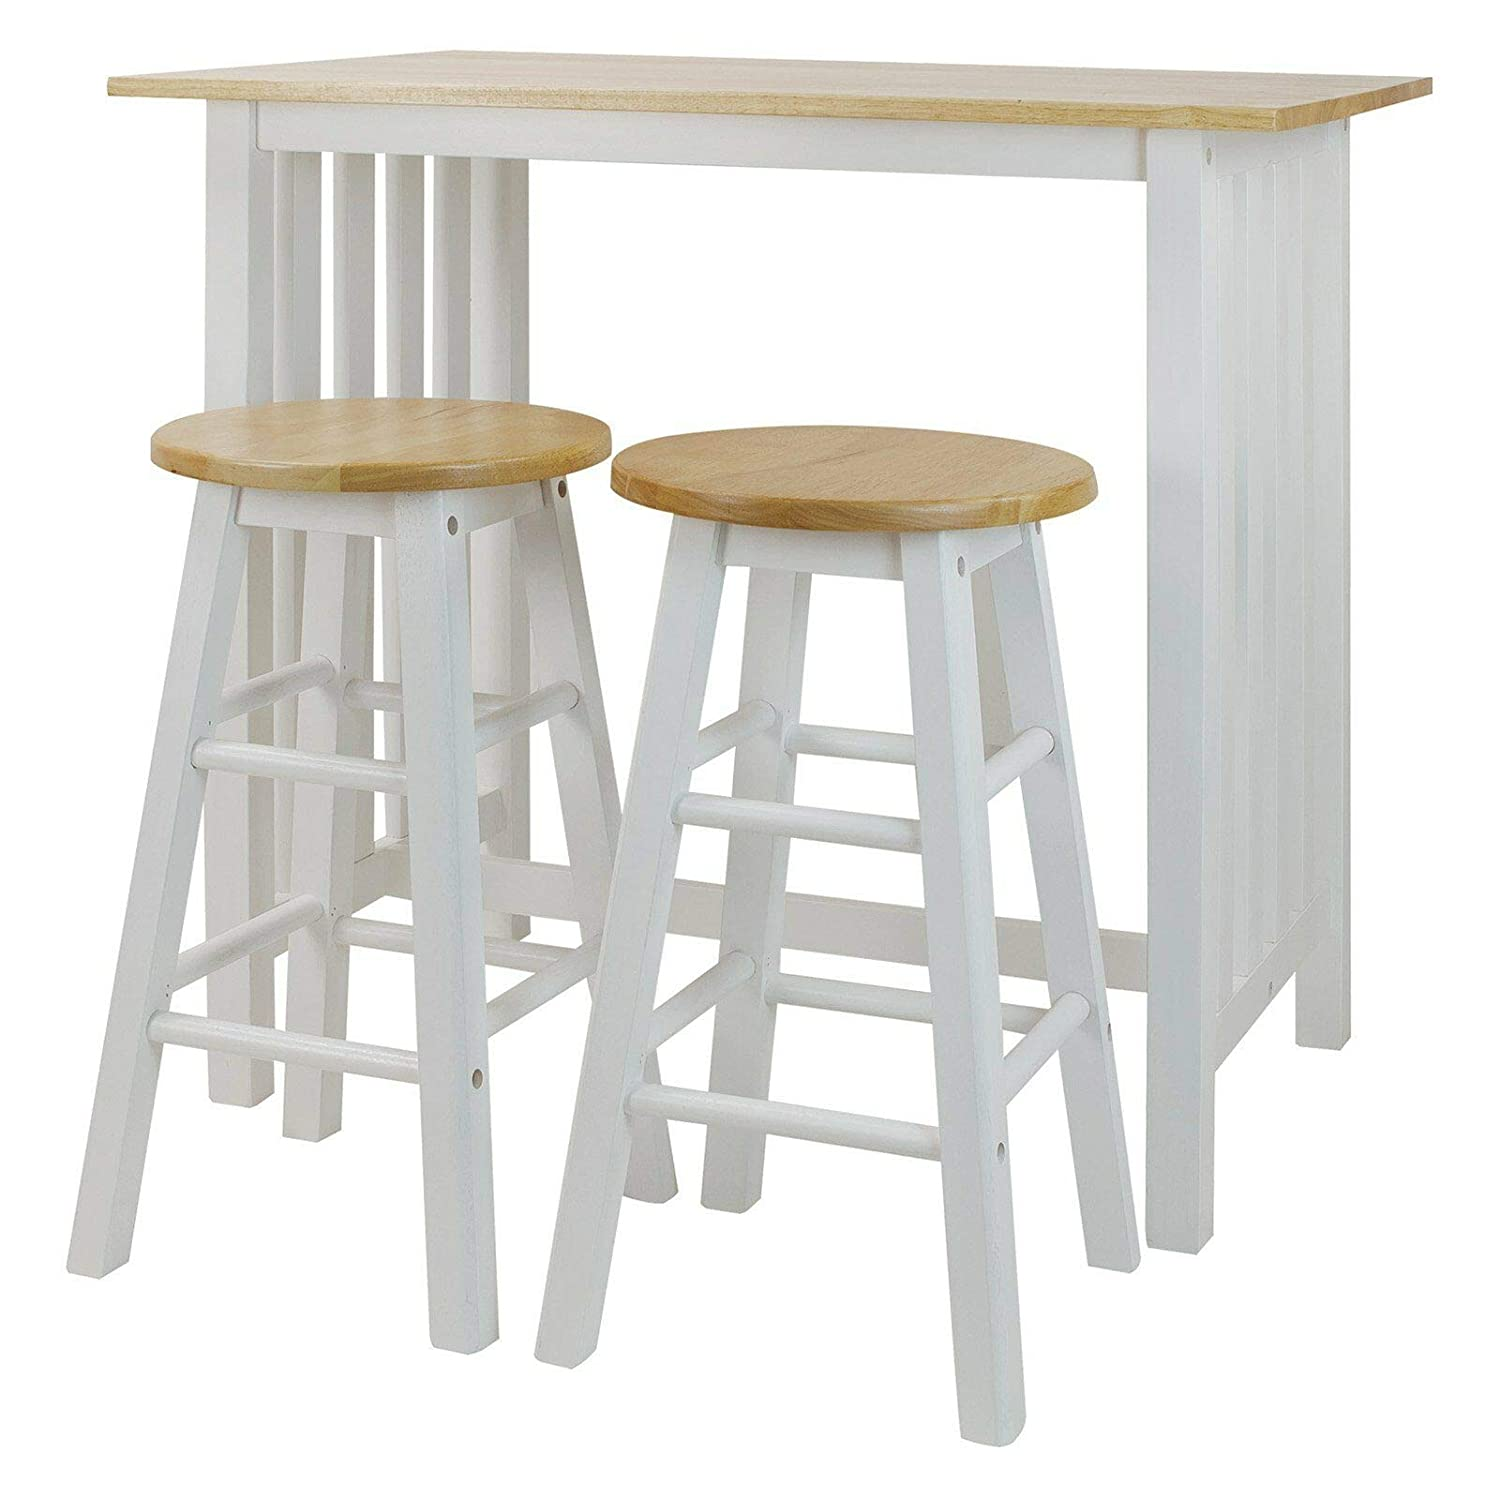 Auténtico 3 PCS Breakfast Set 1 Table 2 Stools Solid Hardwood Top Breakfast Lunch Dinner Home Kitchen Dining Room Furniture Perfect for Small Areas Like Dorm Condo Studio Apartment Versatile Design